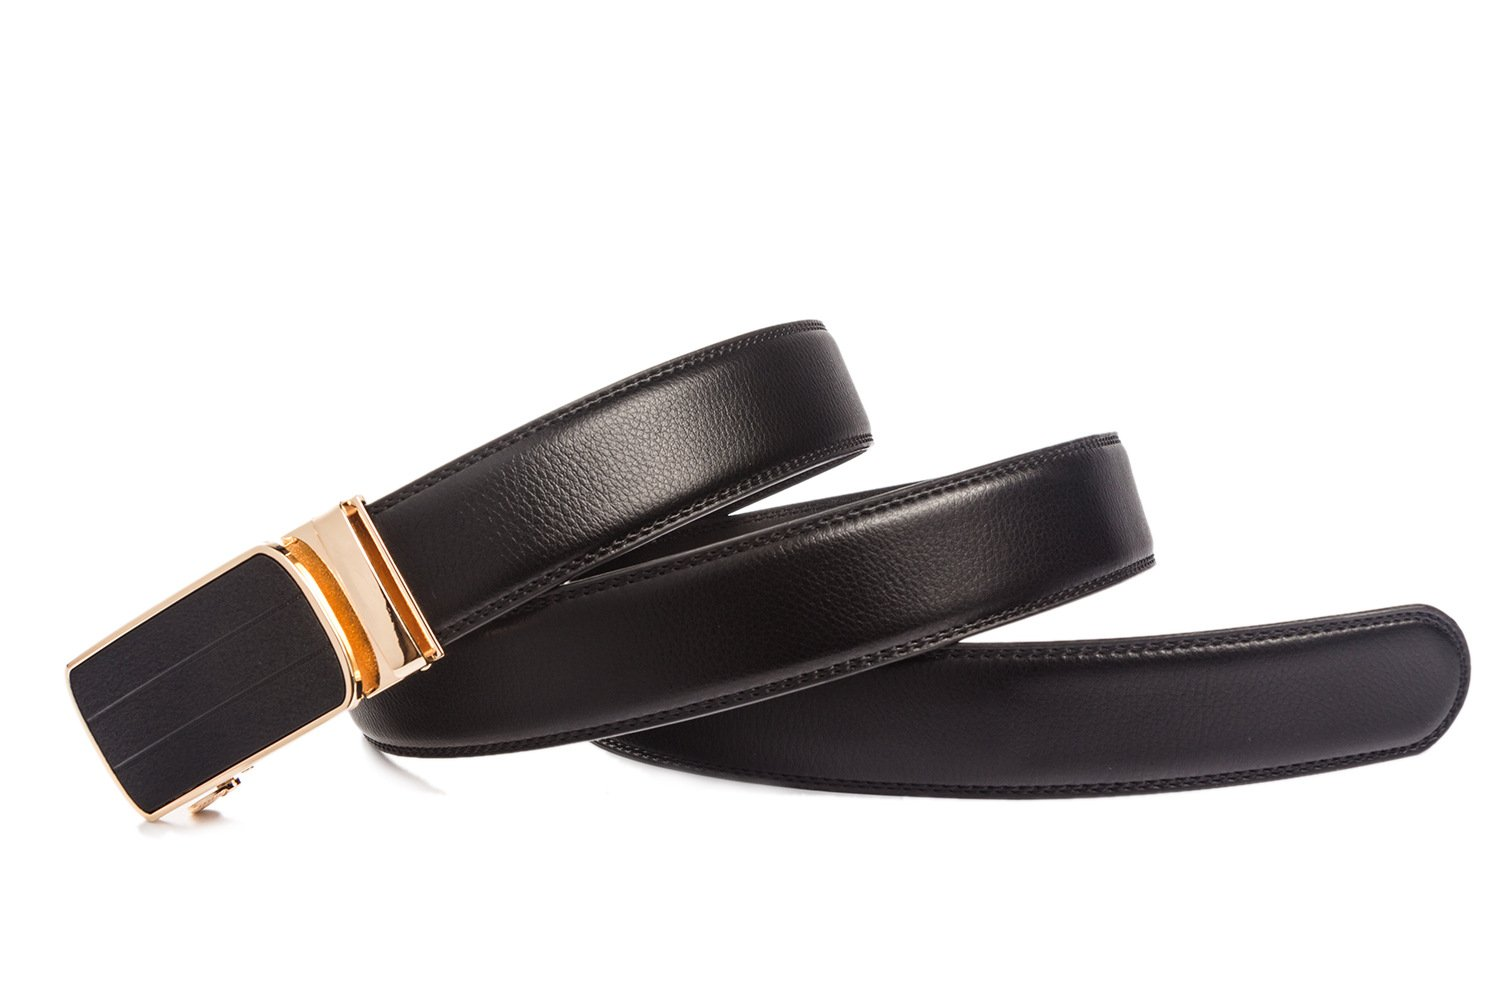 ITIEZY Designer Belt For Men Ratchet Leather Dress with Automatic Buckle